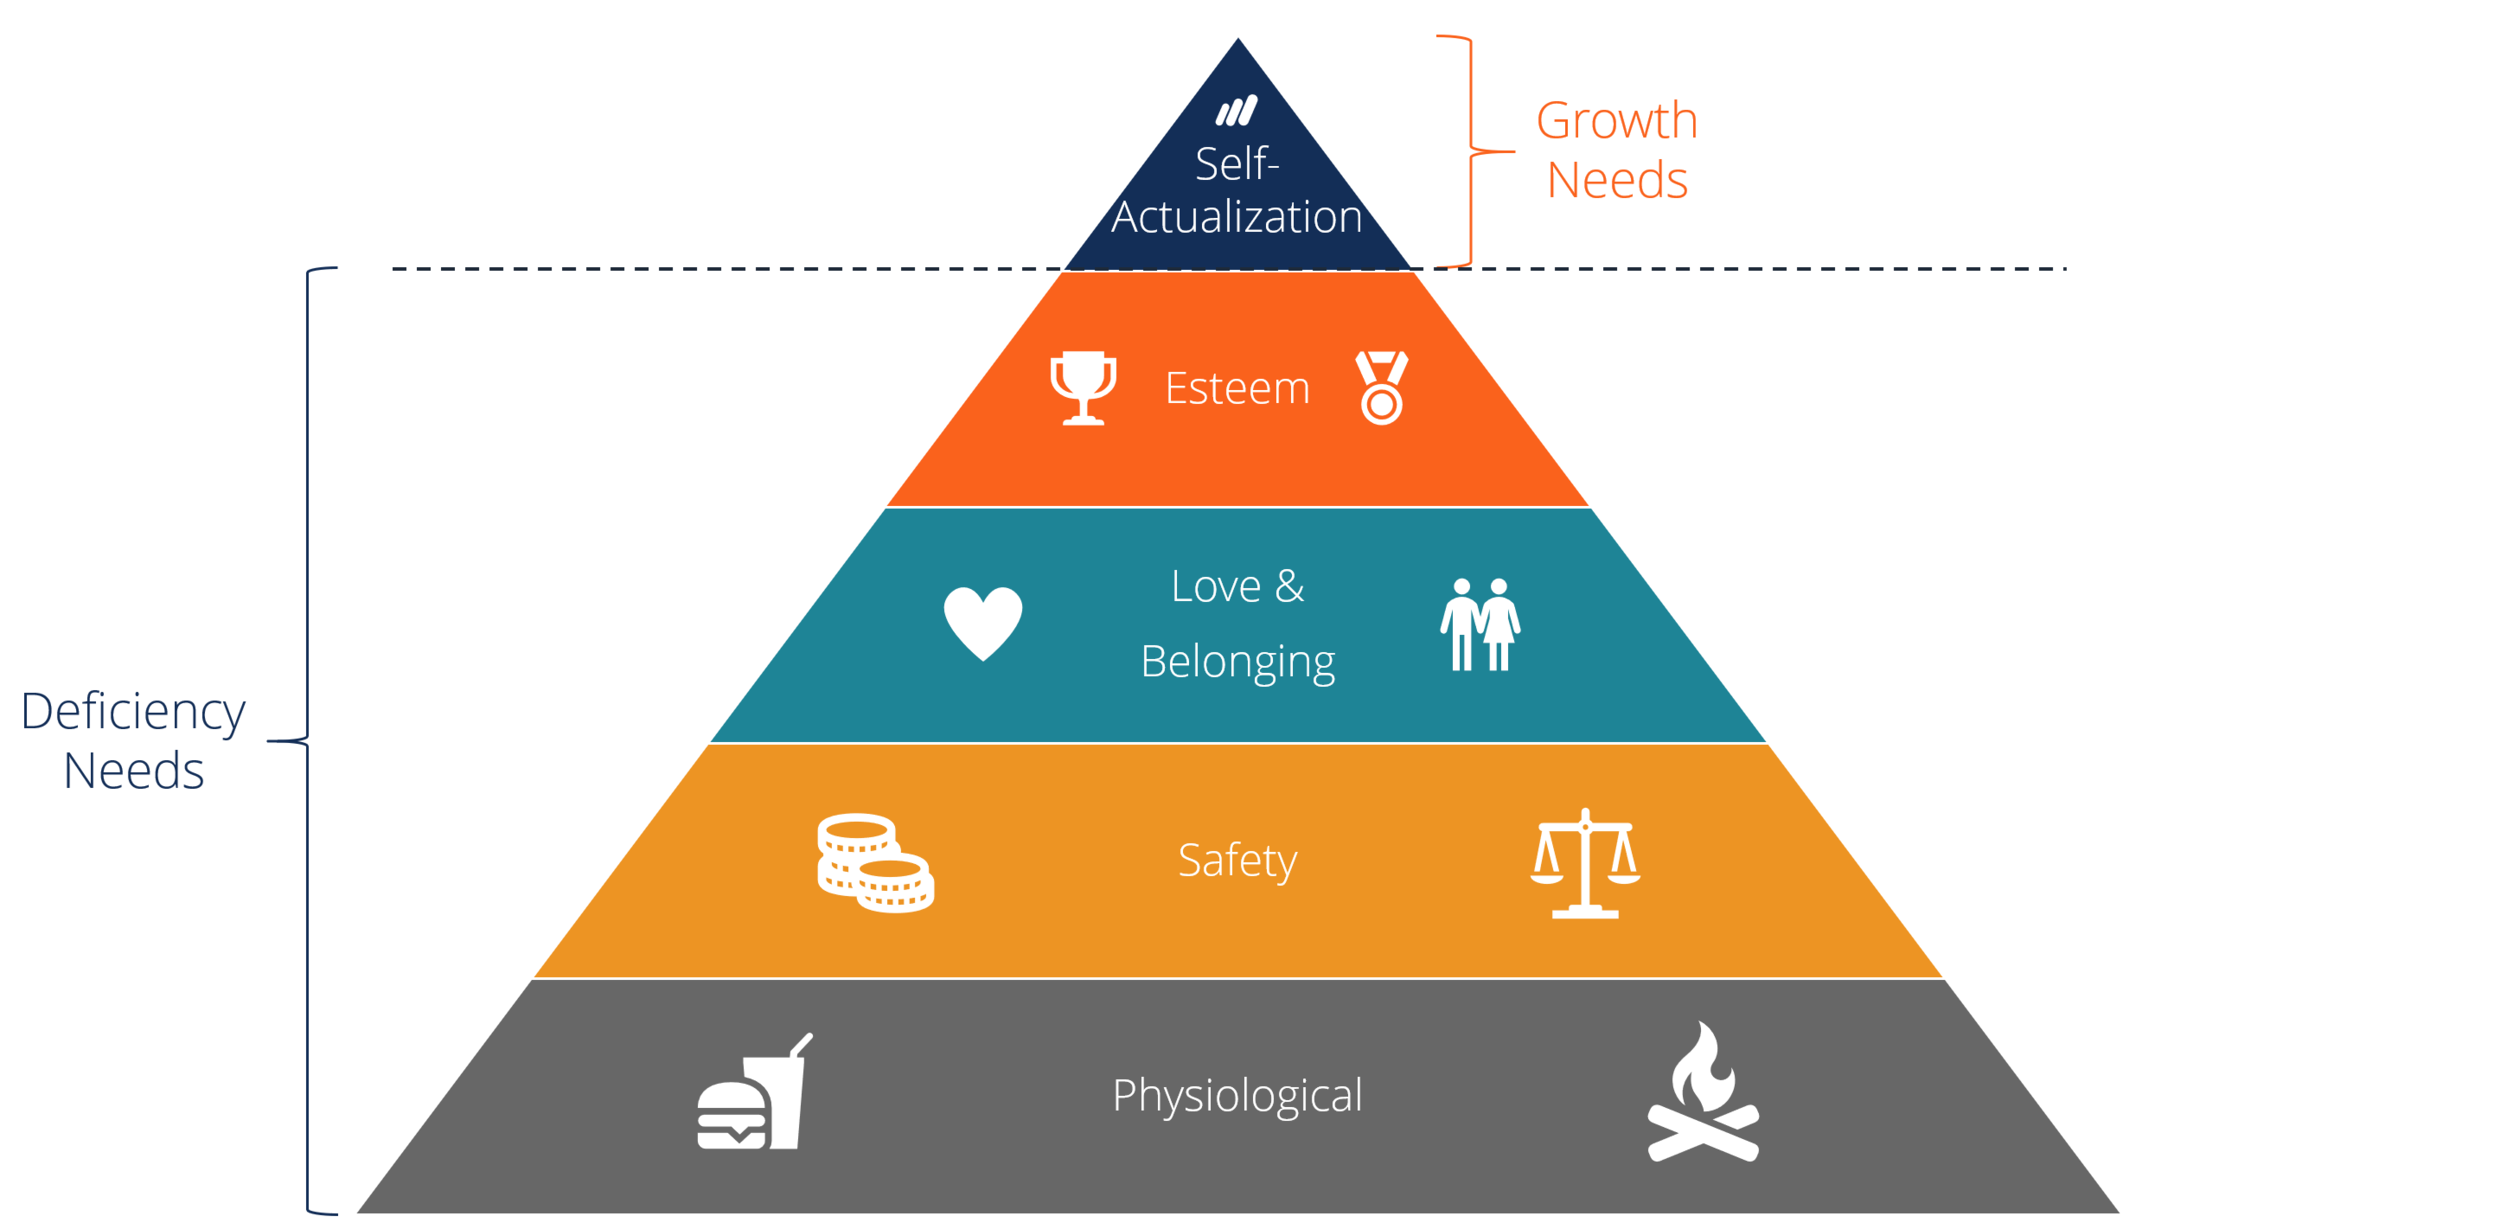 Maslow's Hierarch of Needs from Corporate Finance Institute